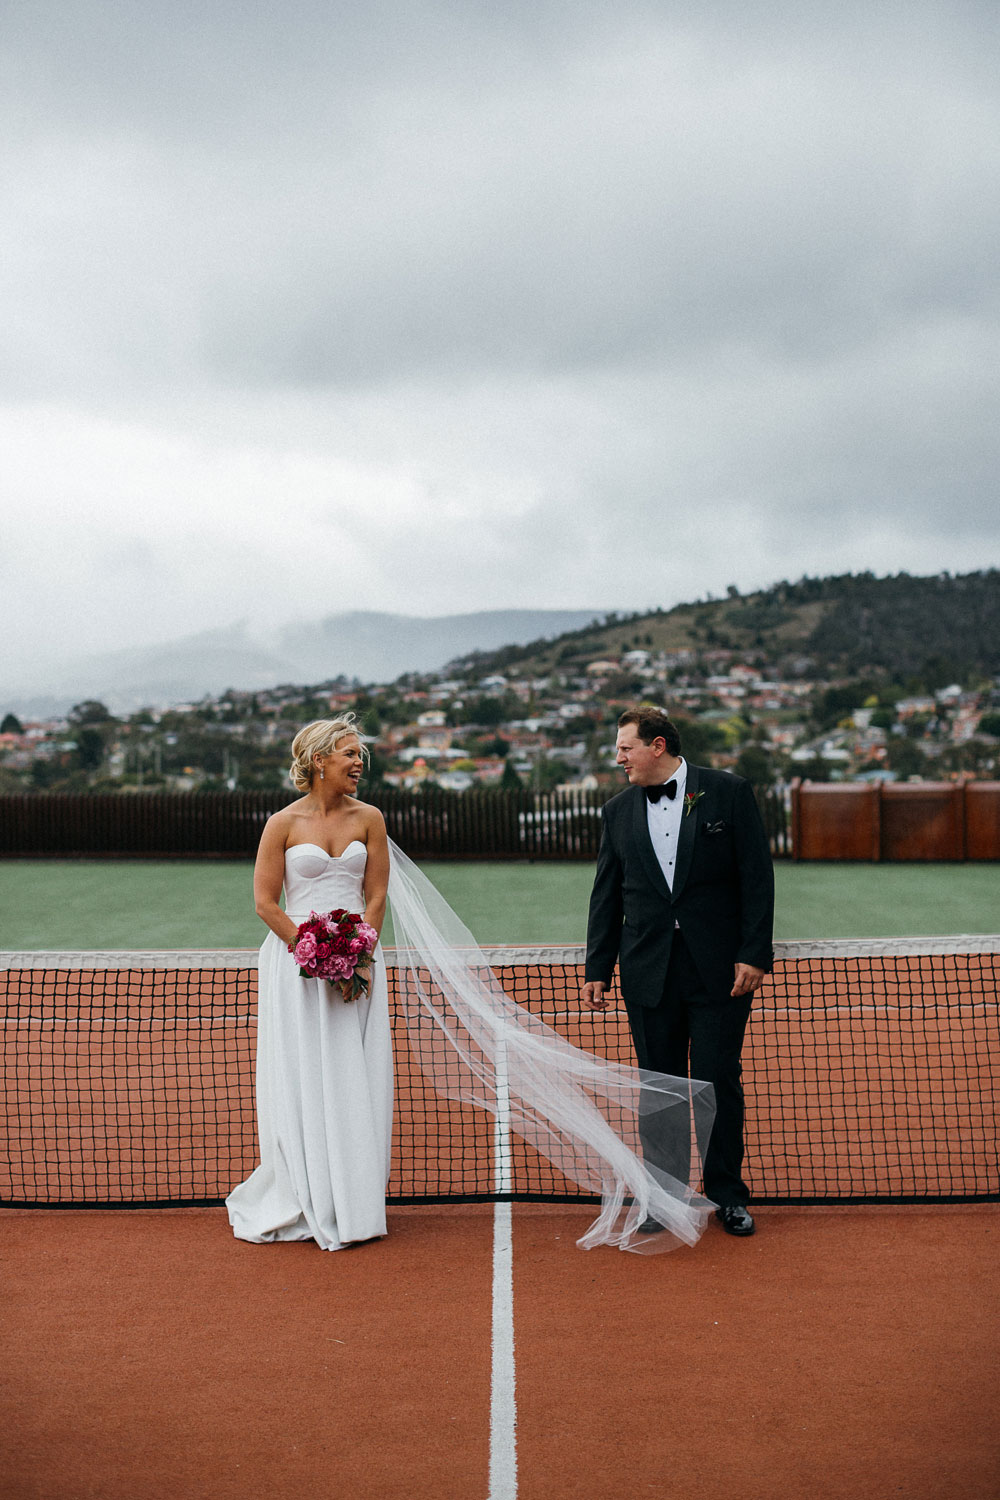 MONA-wedding-photographer-tennis-court